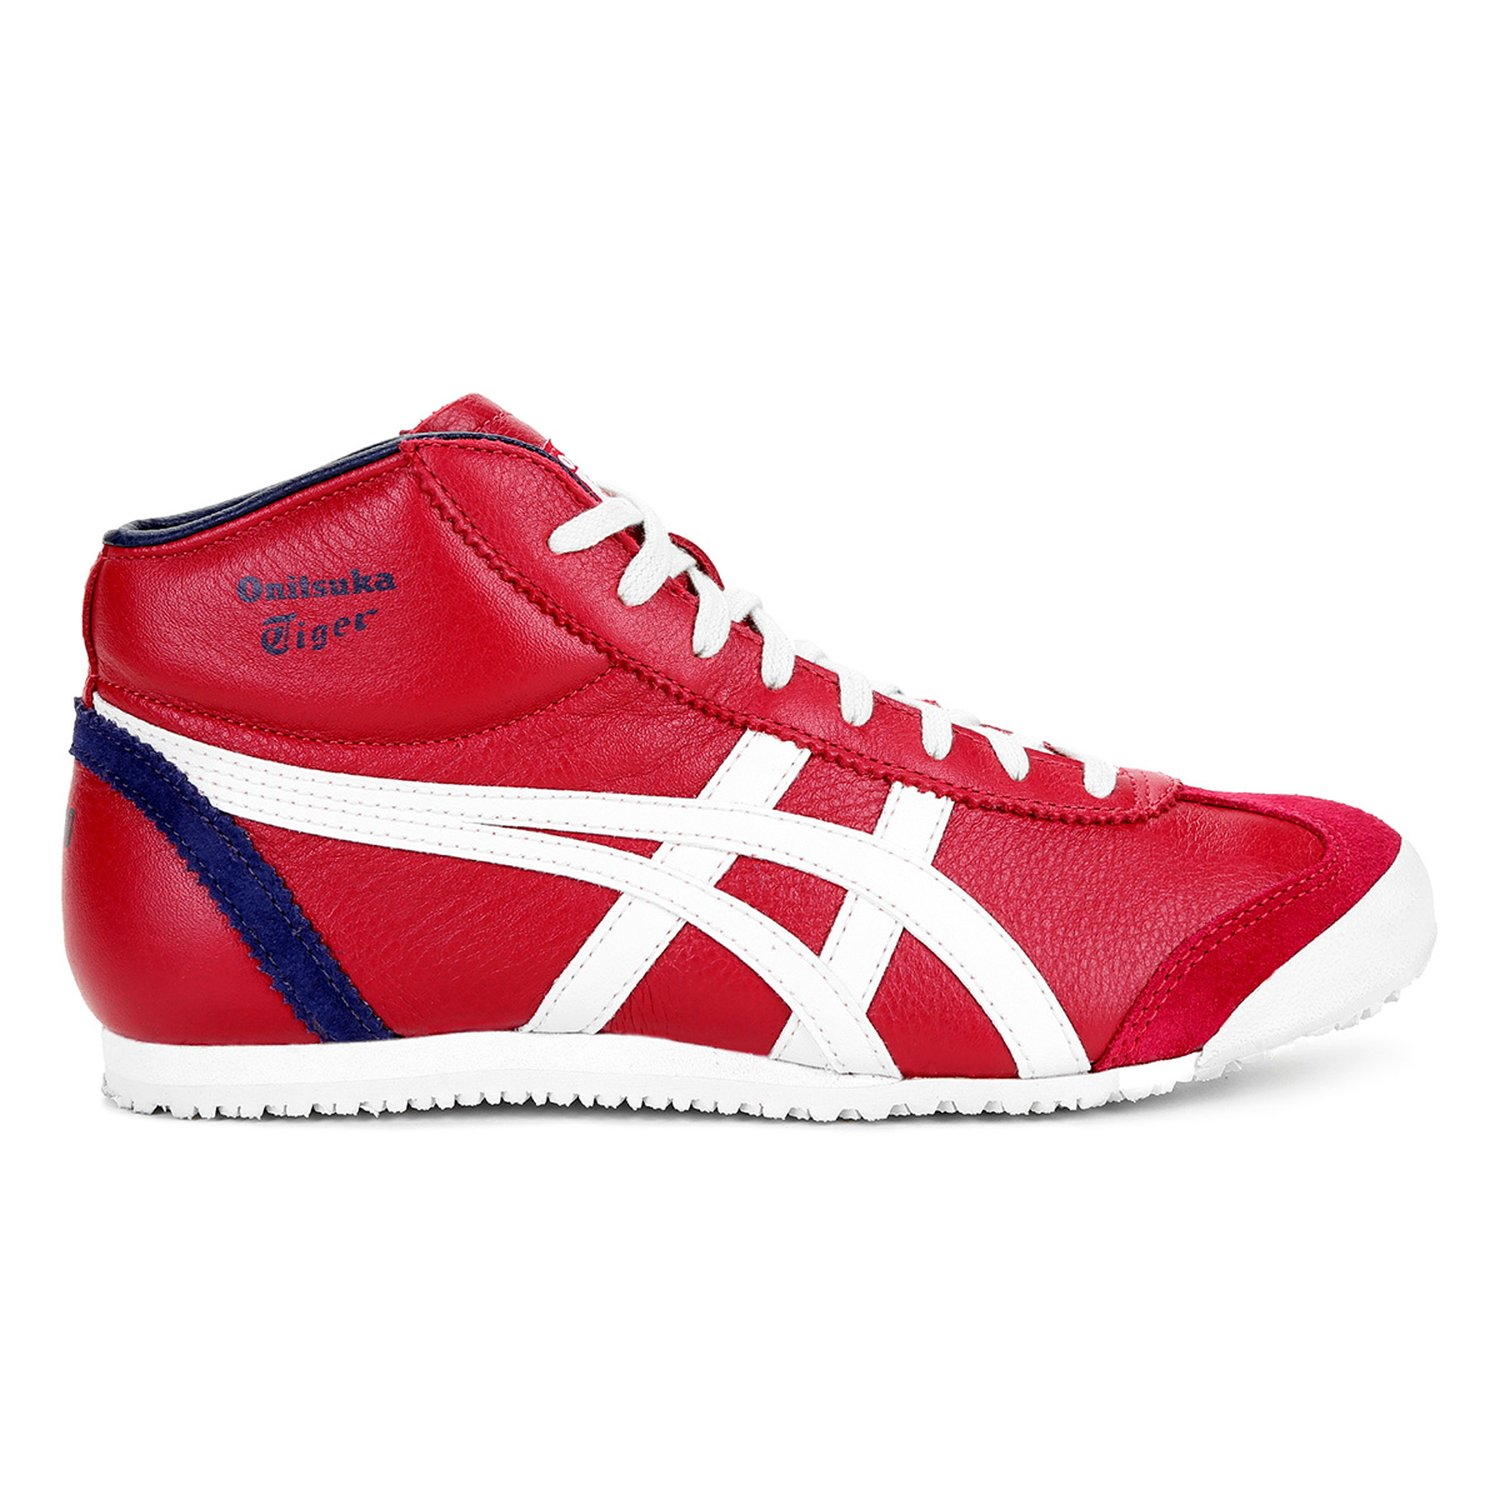 new arrival 5c92d 5a3f5 Tênis Onitsuka Tiger Mexico 66 Mid Runner